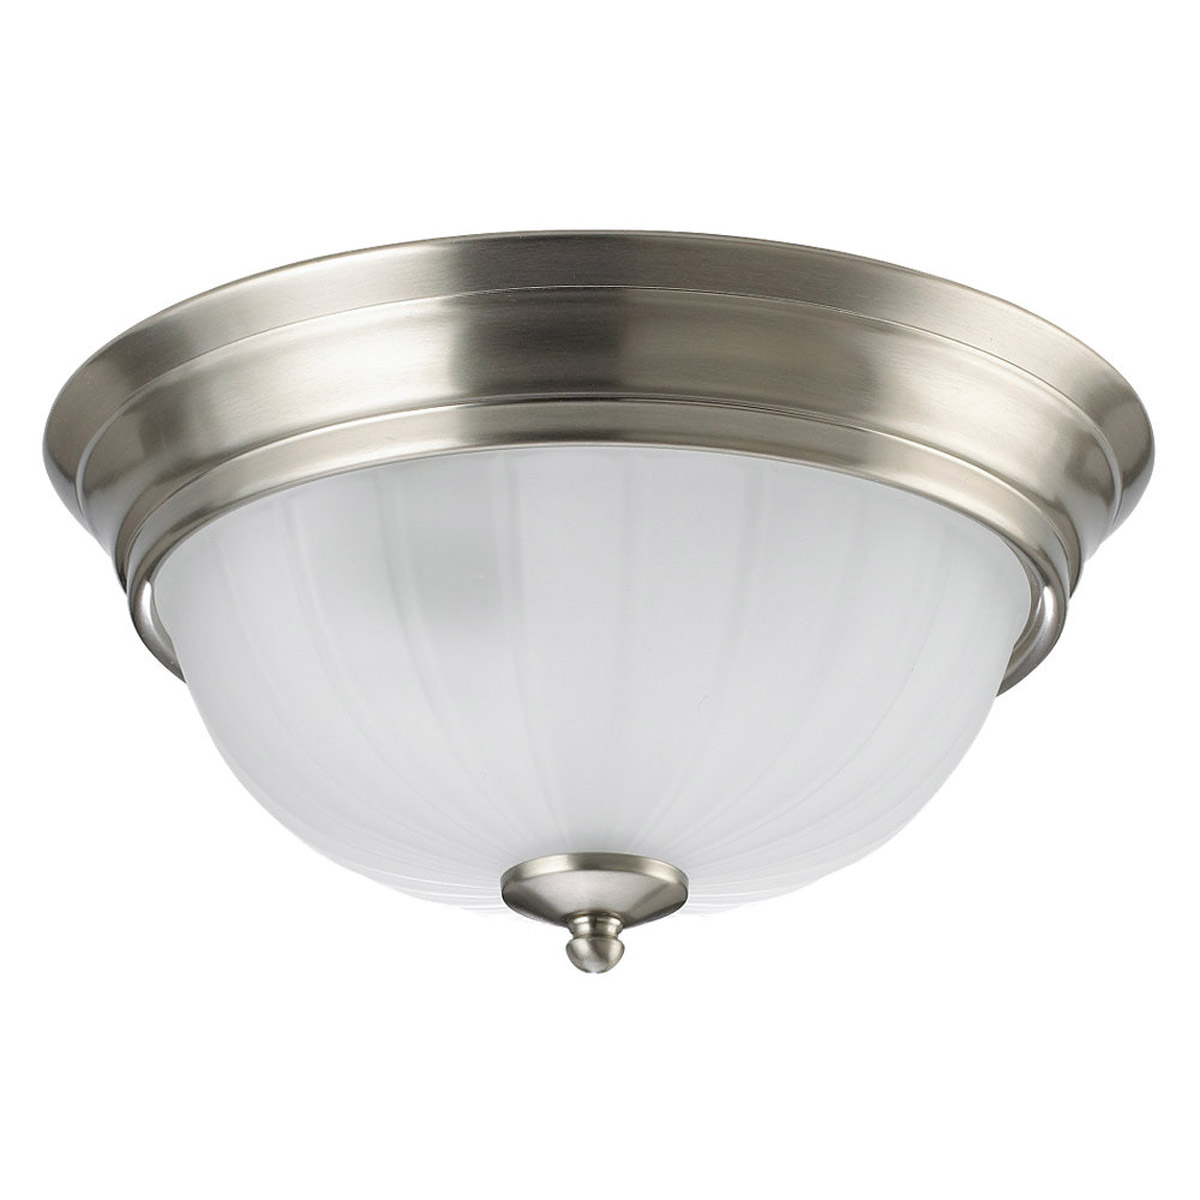 Sea Gull Lighting Floyd 3 Light Flush Mount in Brushed Nickel 79506BLE-962 photo